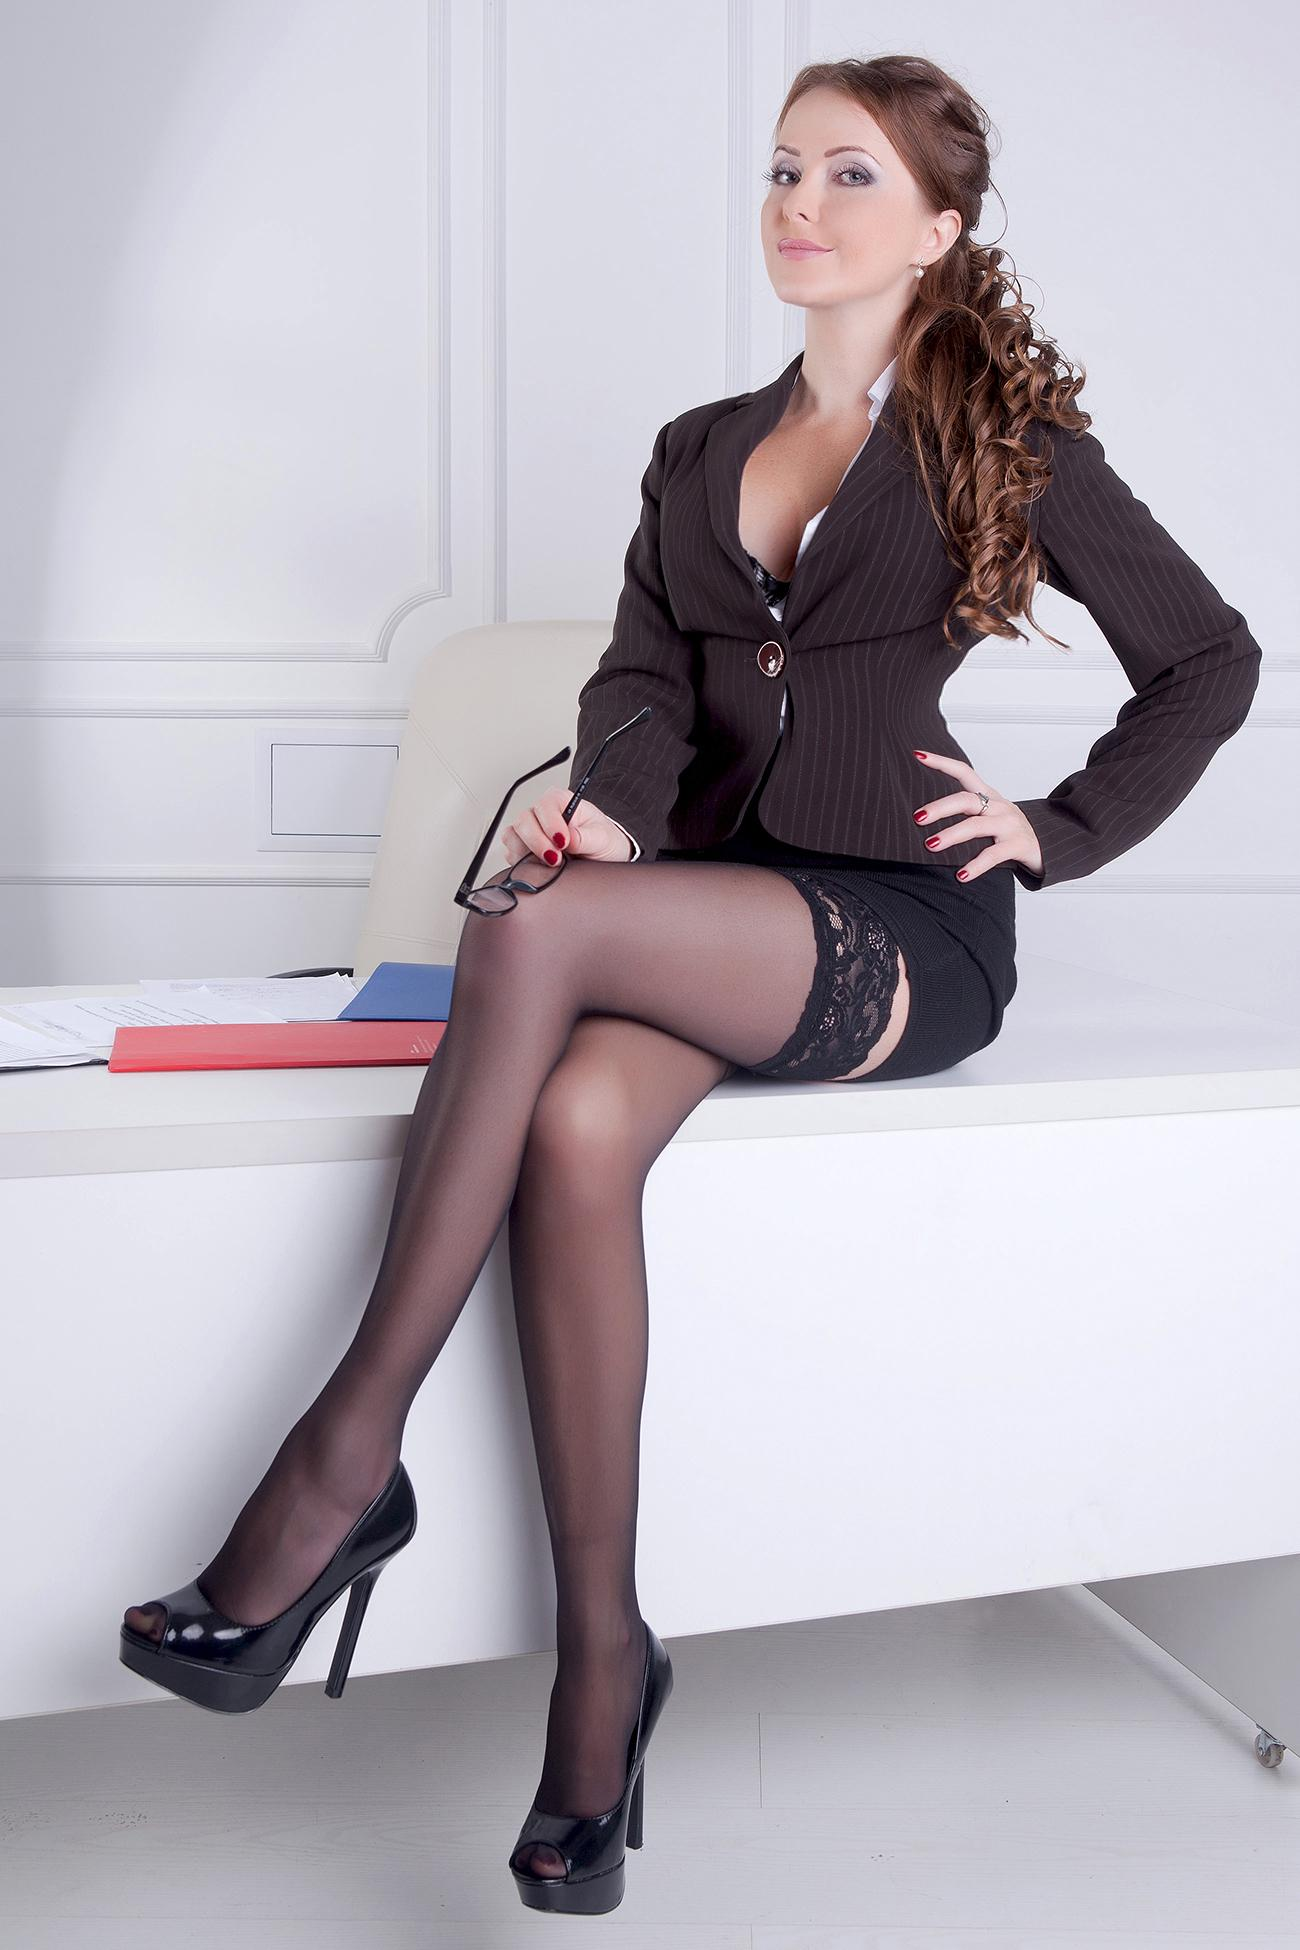 "Audrey on Twitter: ""@ifriends #sexysecretary #roleplay # ..."